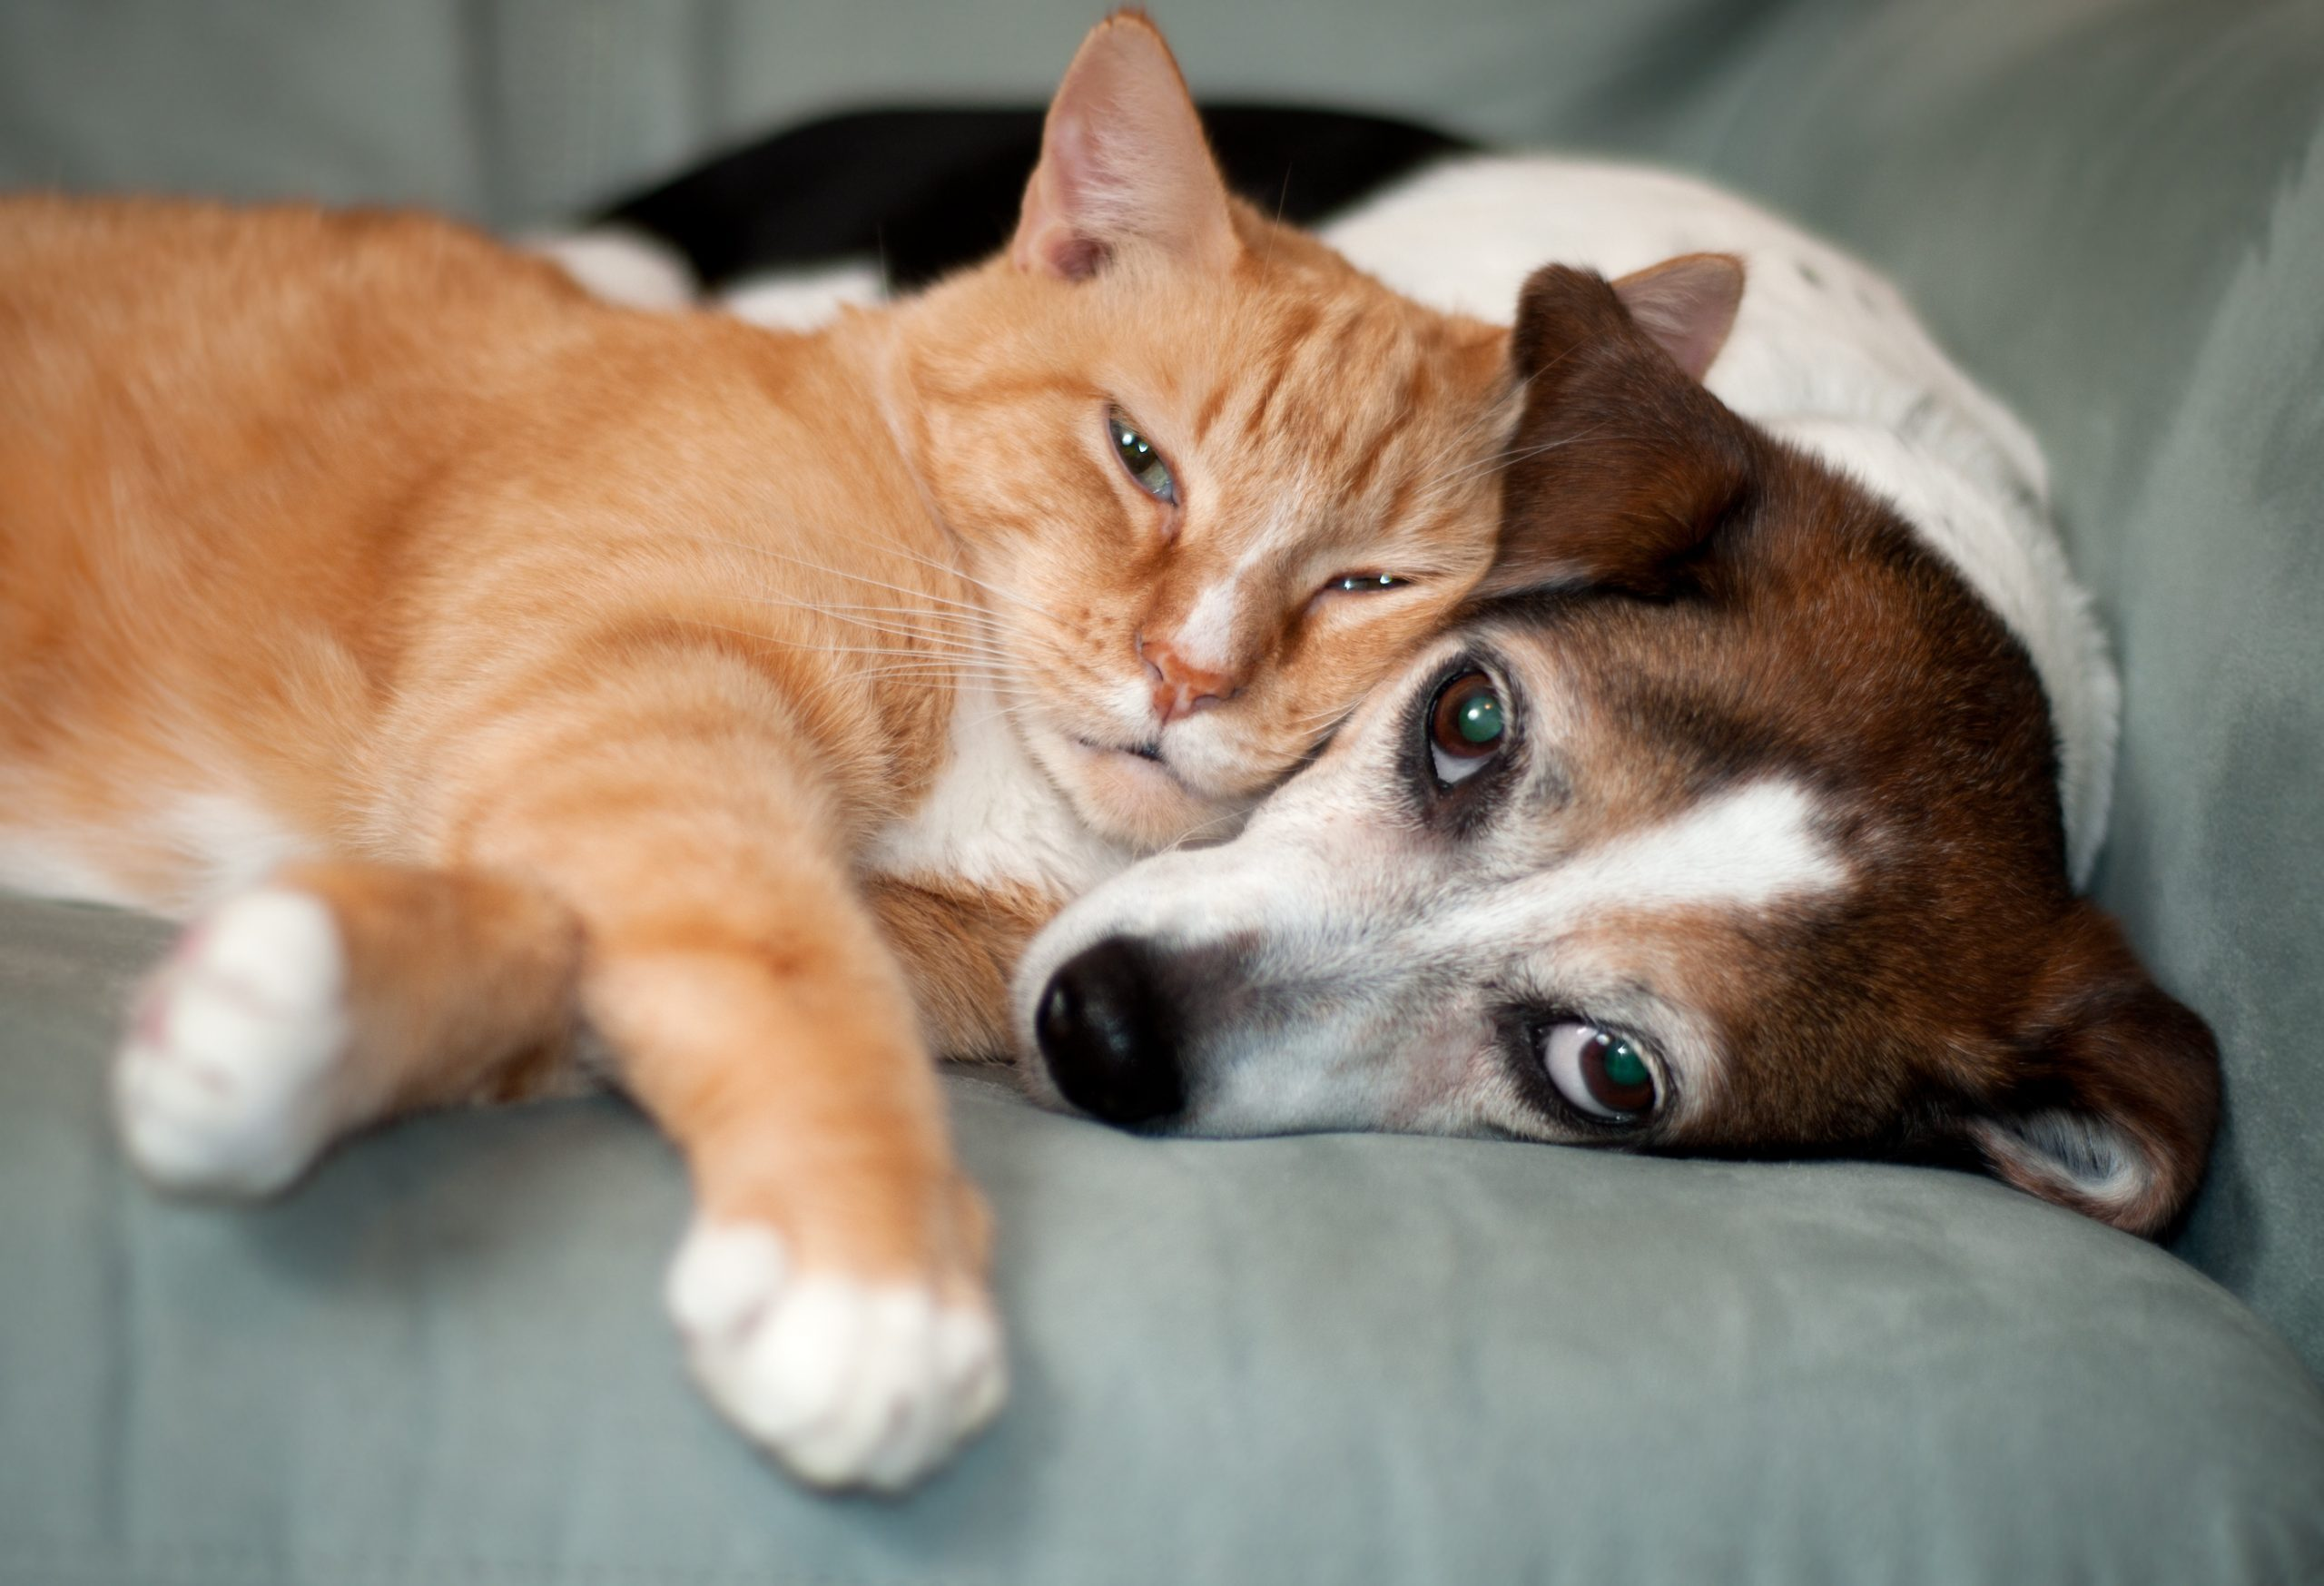 Puppy (and kitty) love